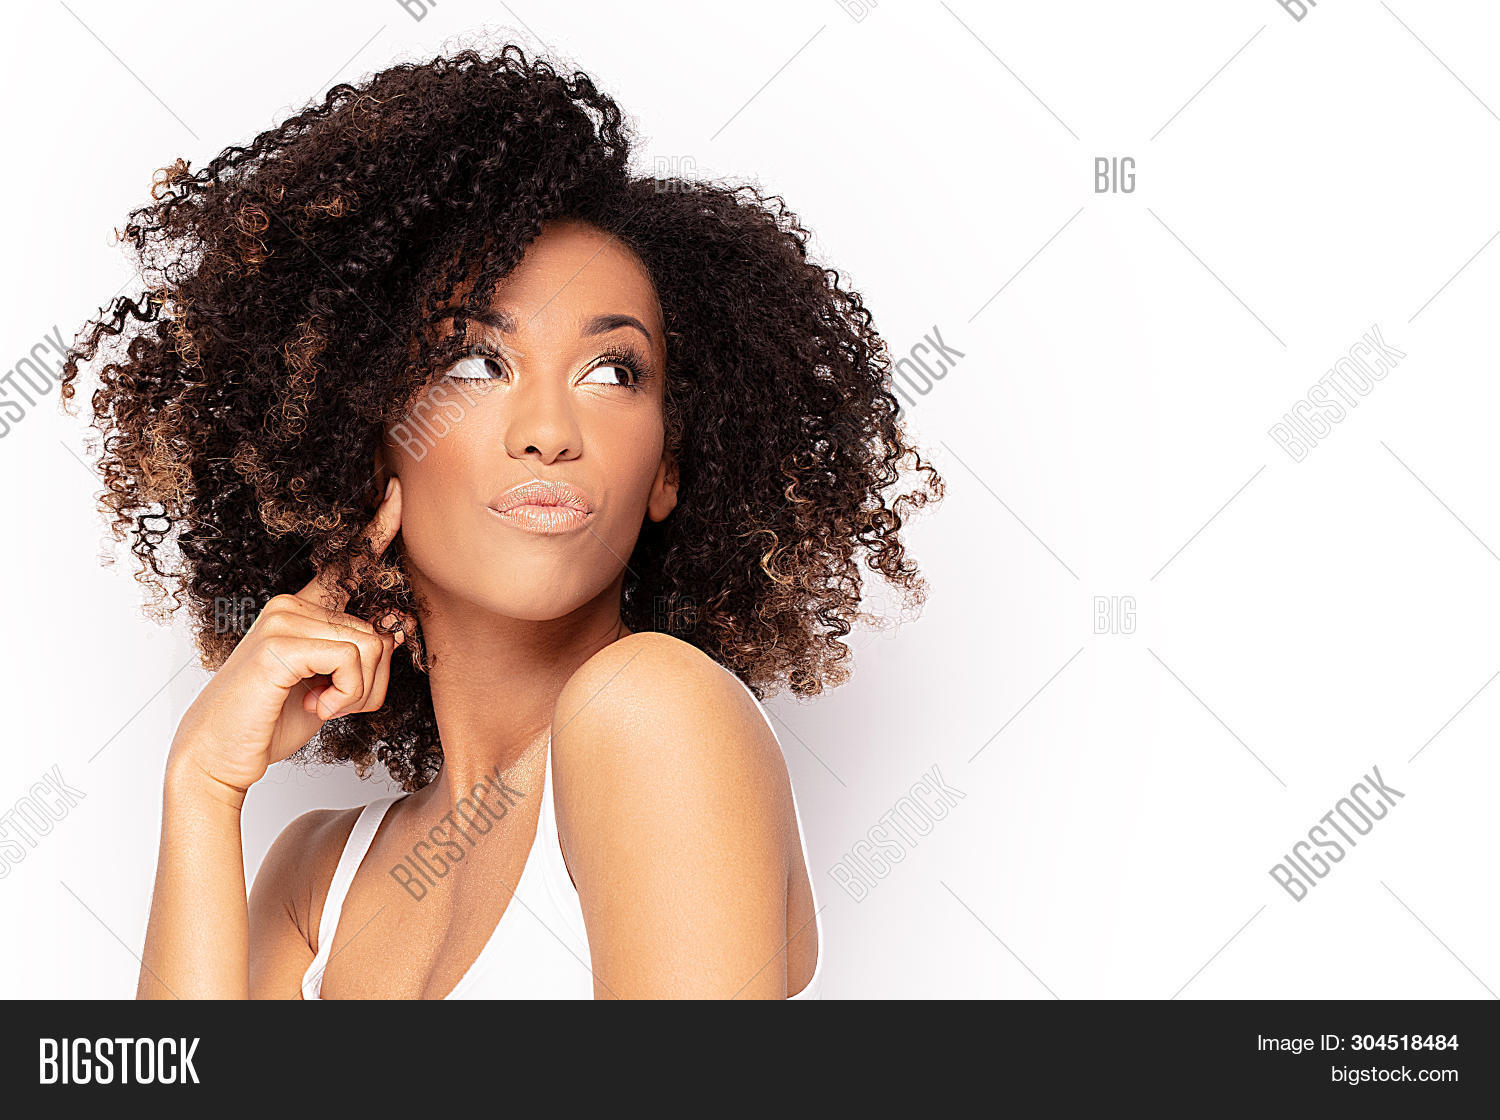 african,afro,american,attractive,background,beautiful,beauty,closeup,cosmetology,curly,dermatology,enjoying,eyes,face,fashion,female,flawless,girl,glamour,hair,hands,happy,healthy,isolated,joy,latin,laugh,lifestyle,looking,makeup,model,natural,perfect,photo,portrait,pure,sensual,shoulder,skin,smile,smiling,spa,teeth,treatment,vitamin,wellness,white,woman,women,young